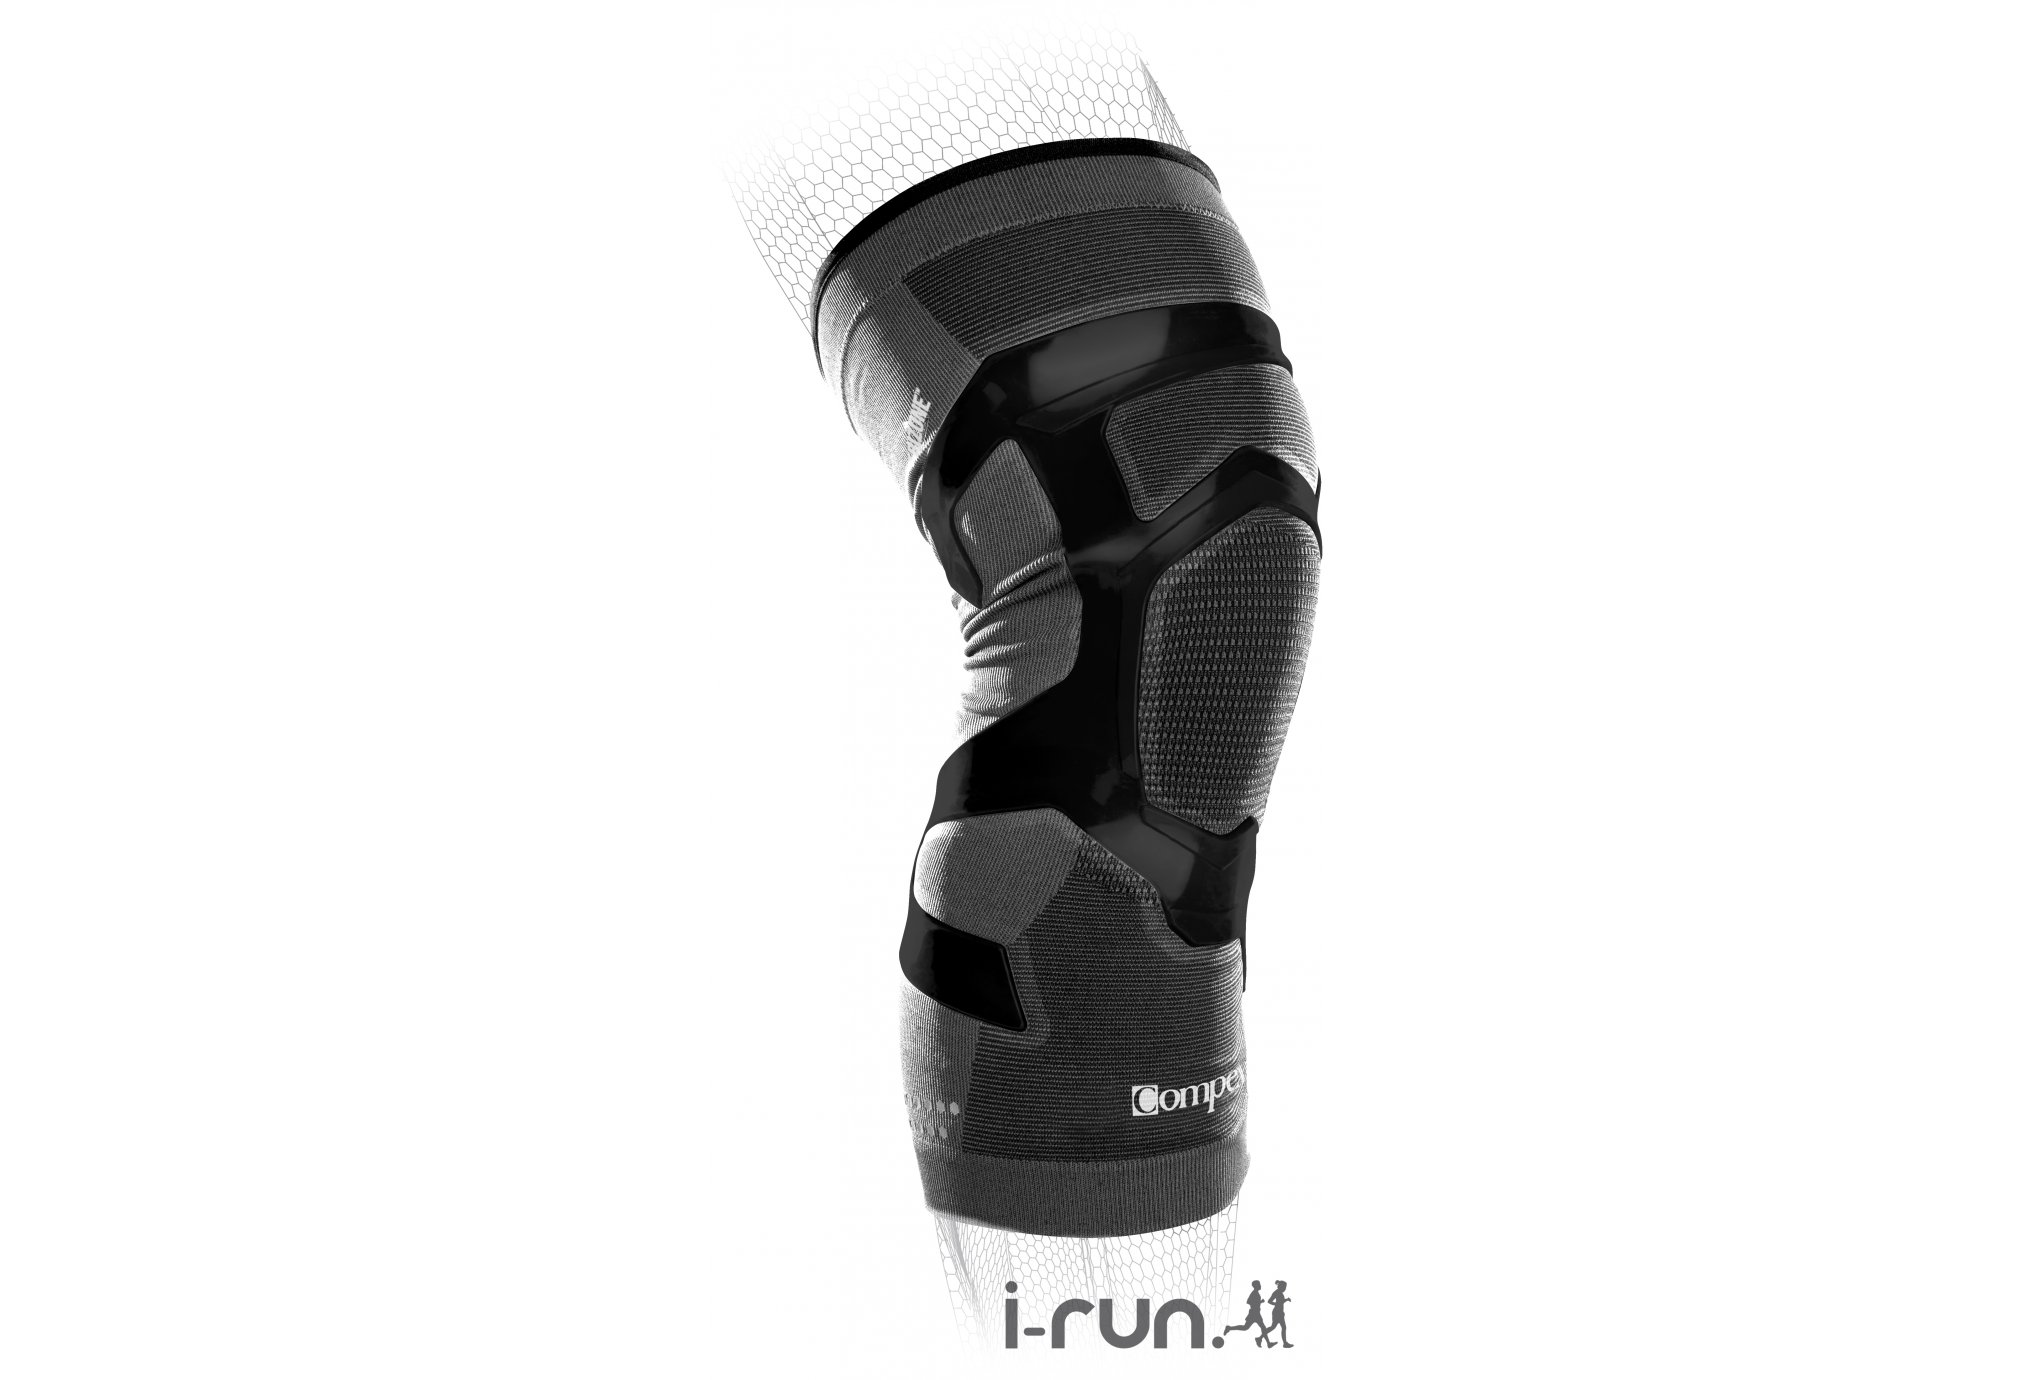 Compex TriZone Knee Right Protection musculaire & articulaire